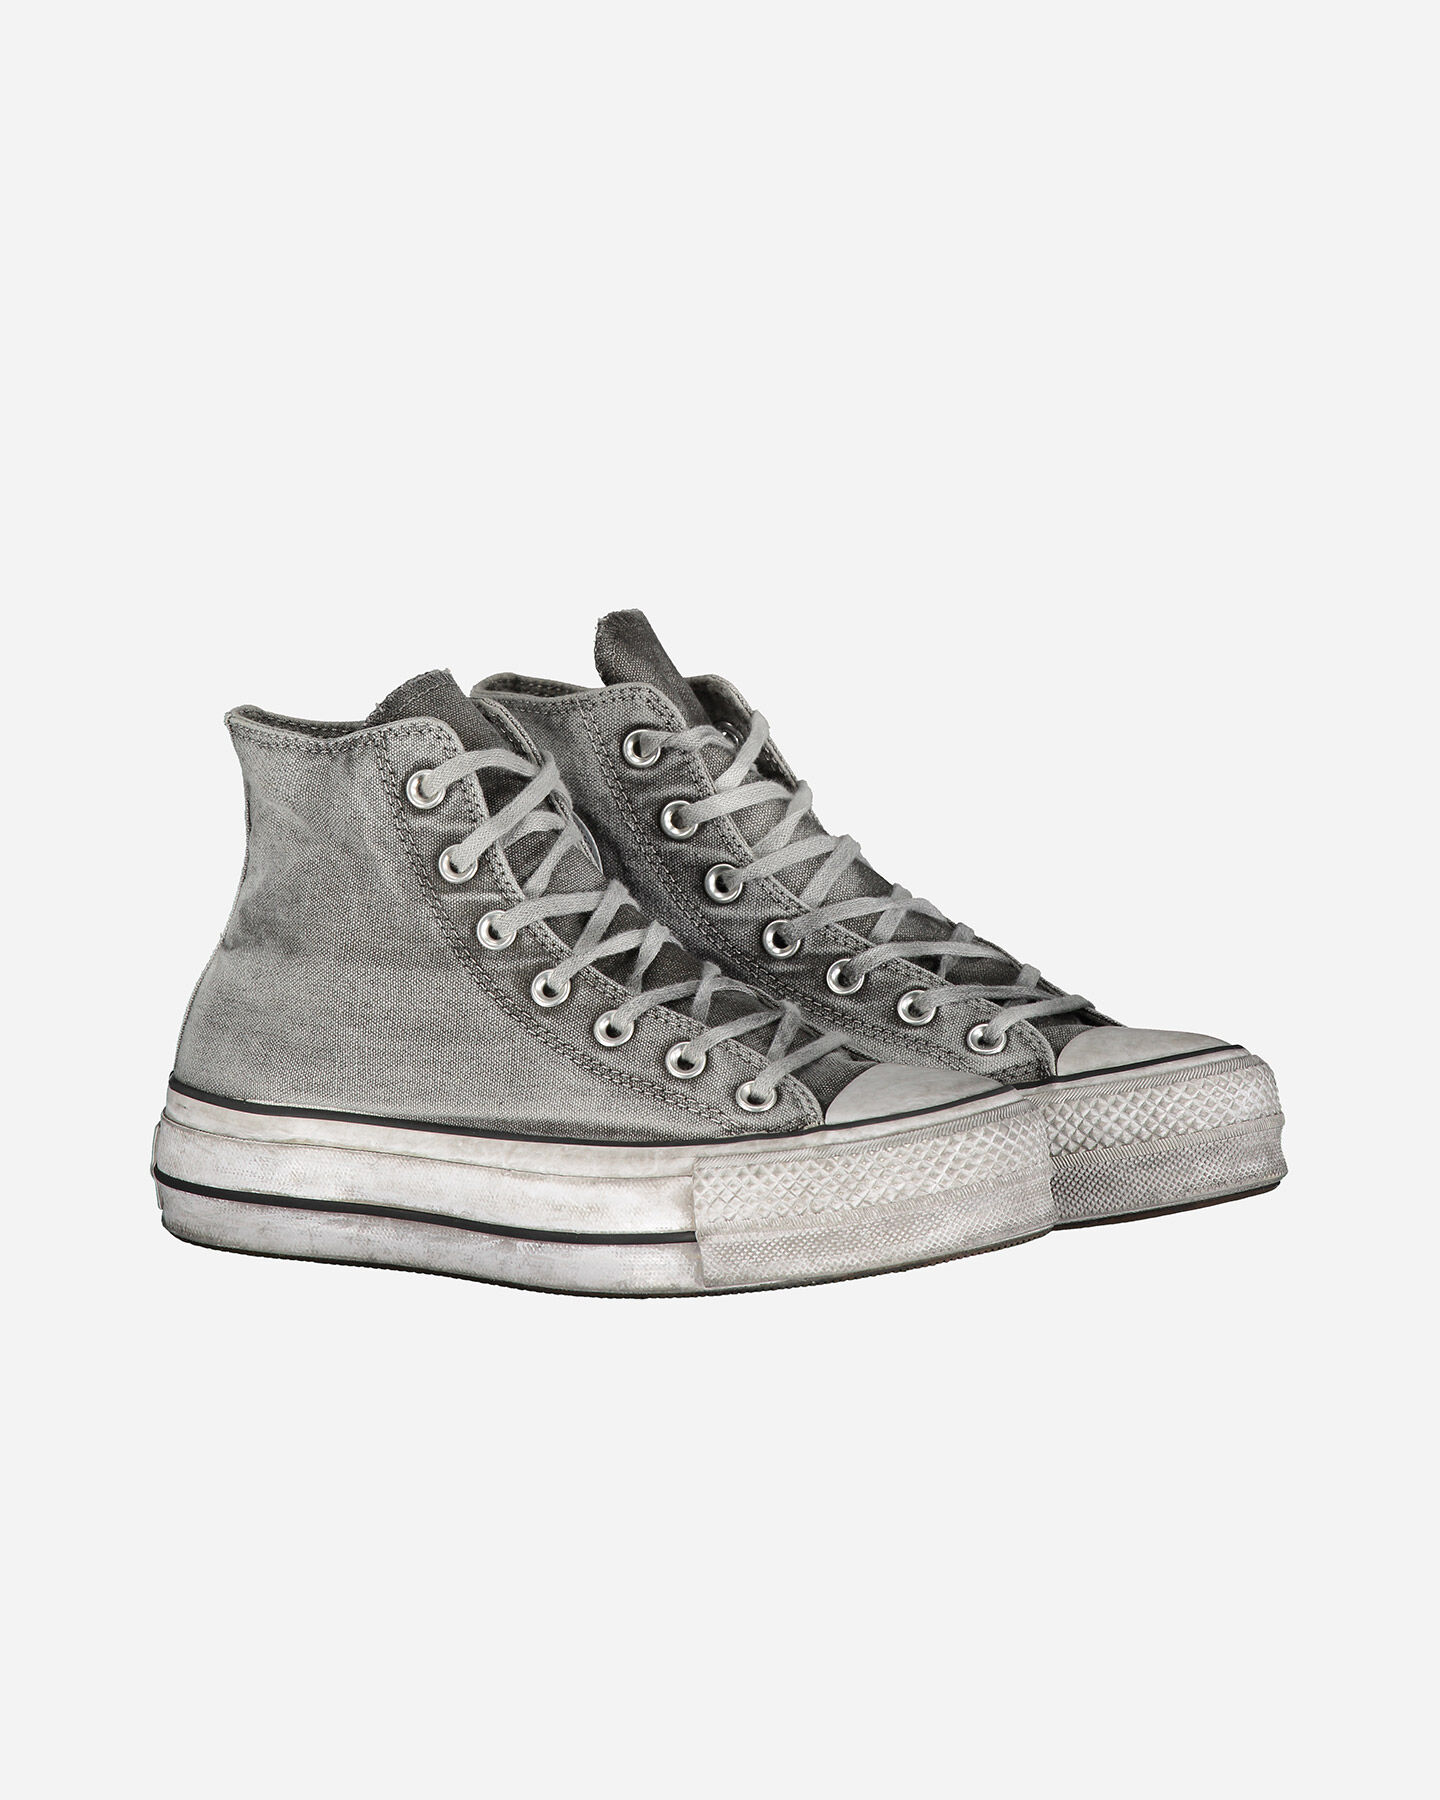 Scarpe sneakers CONVERSE CHUCK TAYLOR ALL STAR SMOKED HIGH W S4075386 scatto 1